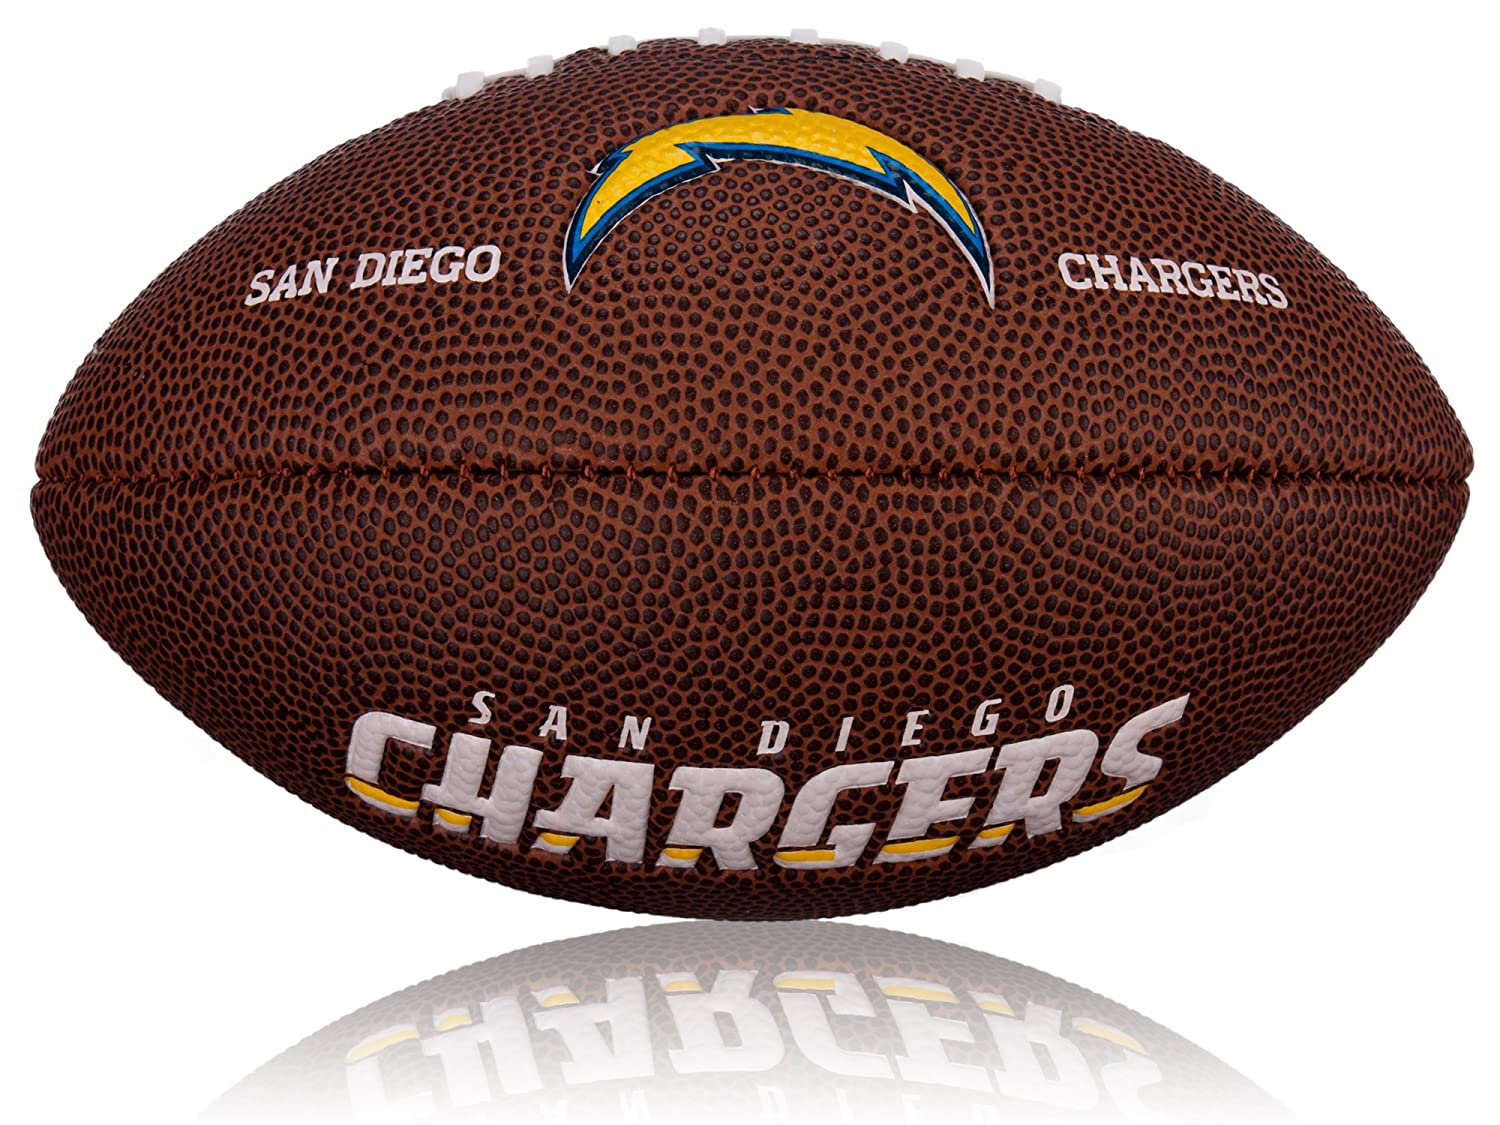 Wilson 2 x NFL Mini San Diego Chargers Football Logo, Brown, WL0206442042